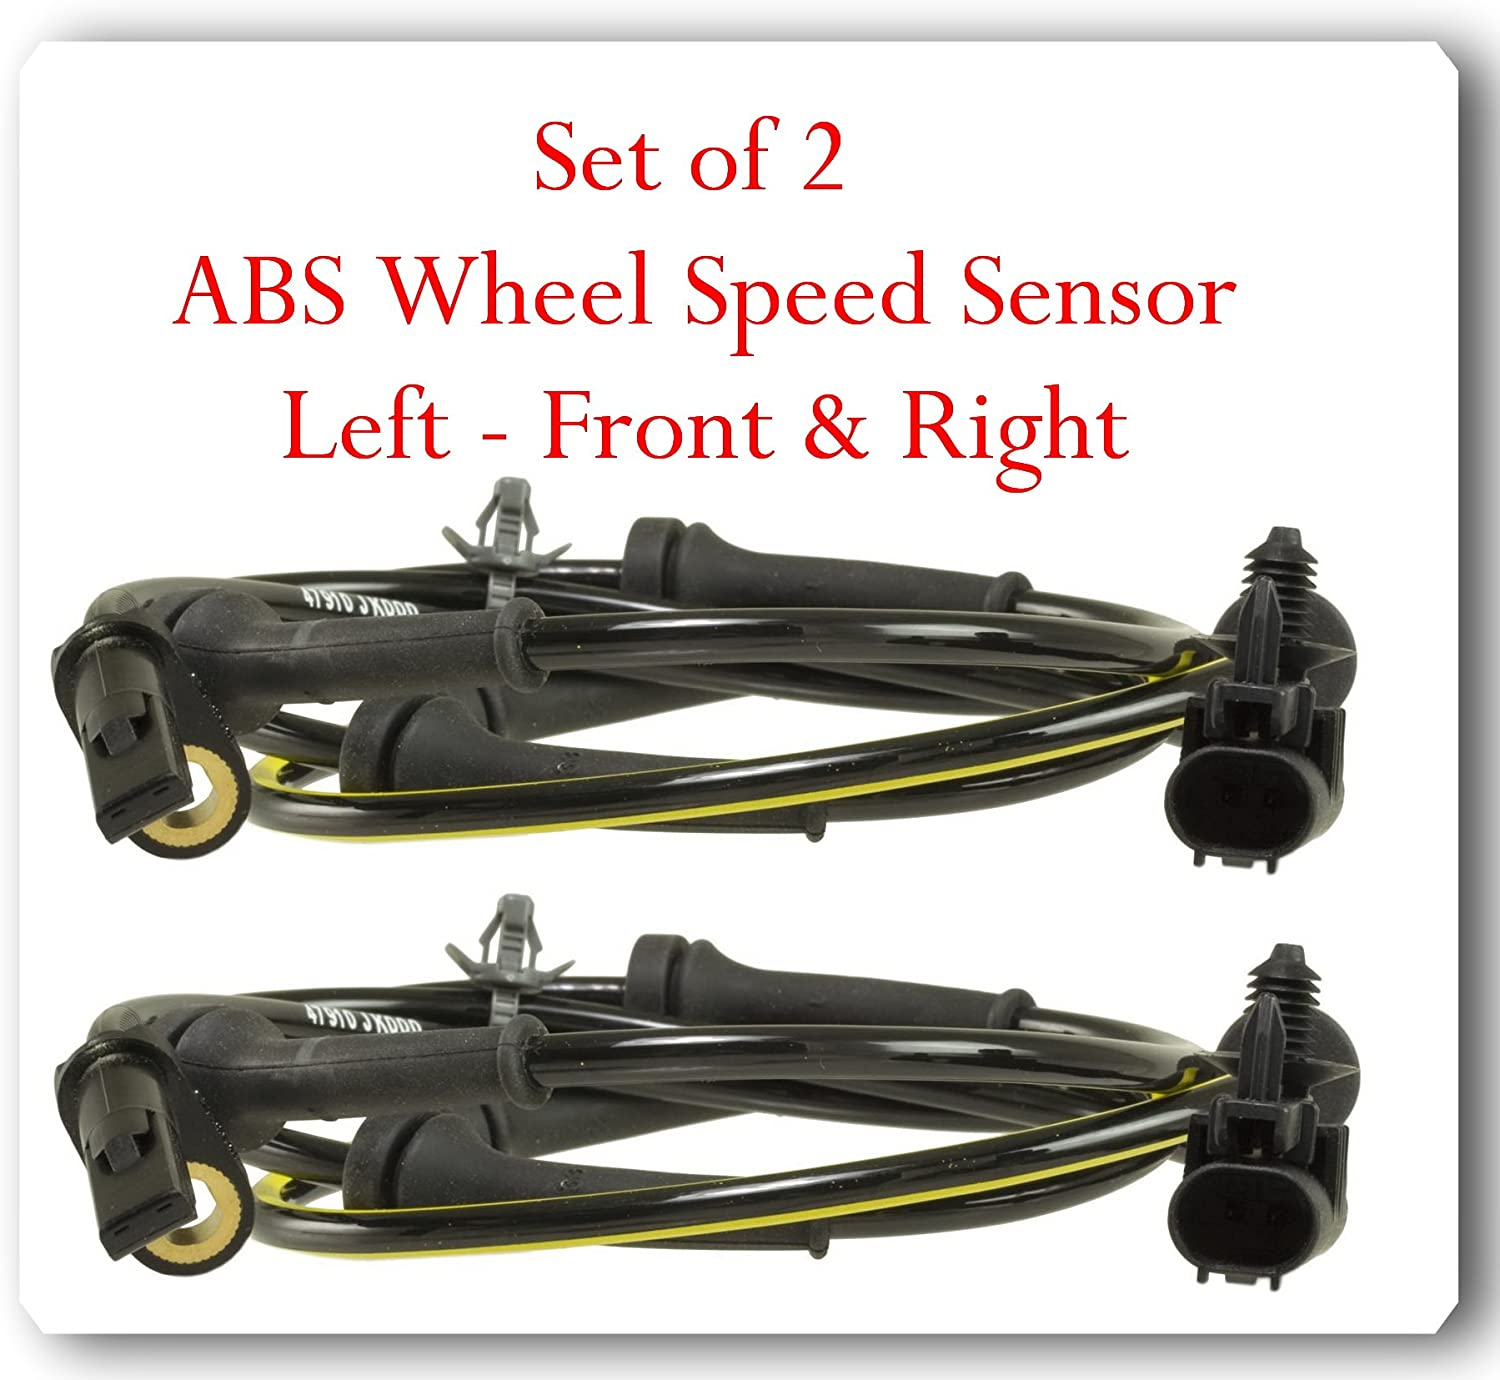 New ABS Wheel Speed Sensor fits Infiniti G25 G35 G37 RWD Front Left or Right